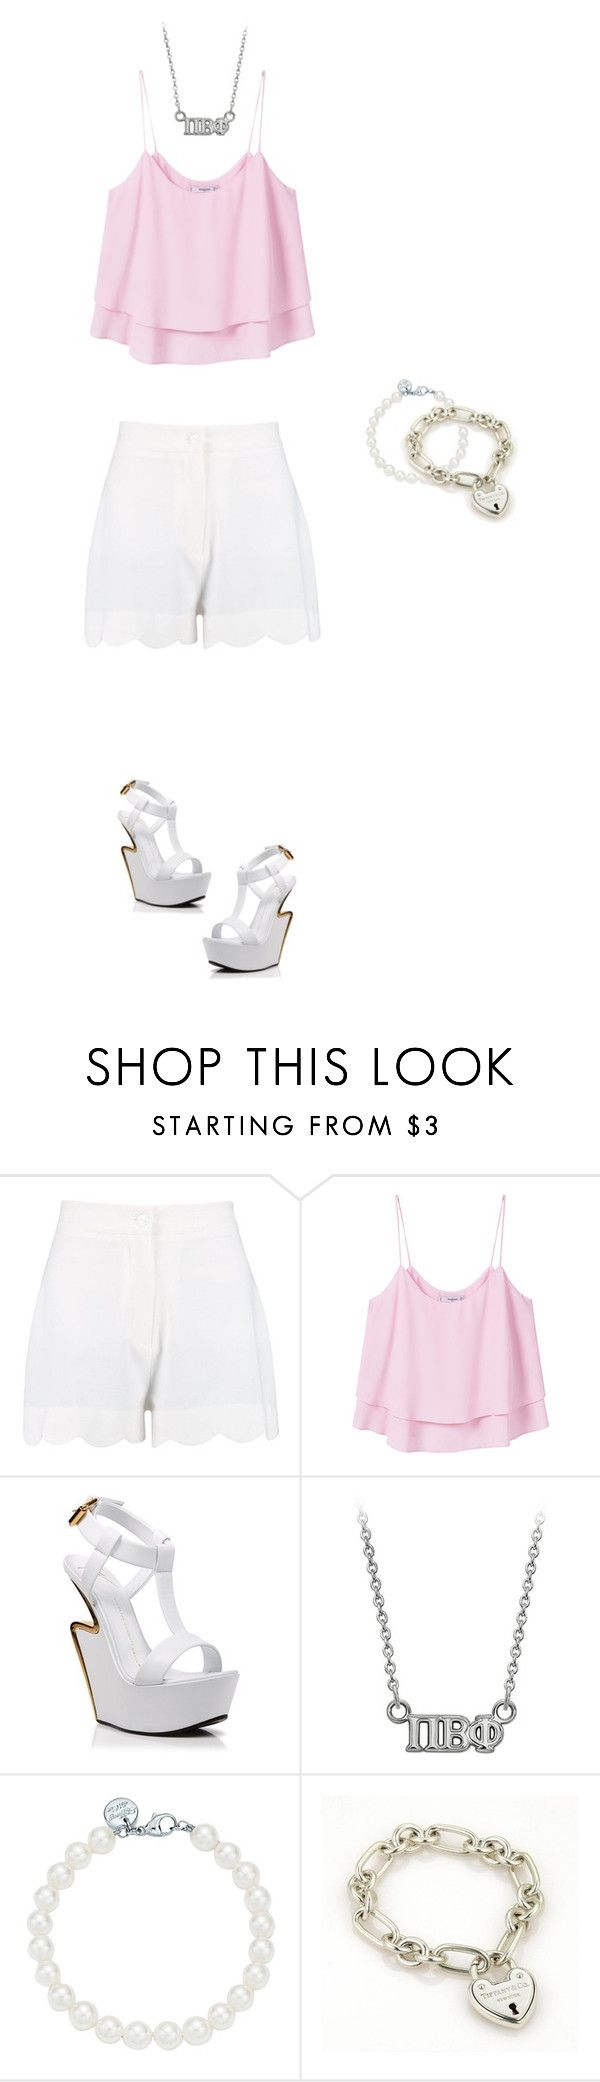 """just another victim"" by fashionistaax on Polyvore featuring MANGO, Giuseppe Zanotti and Tiffany & Co."